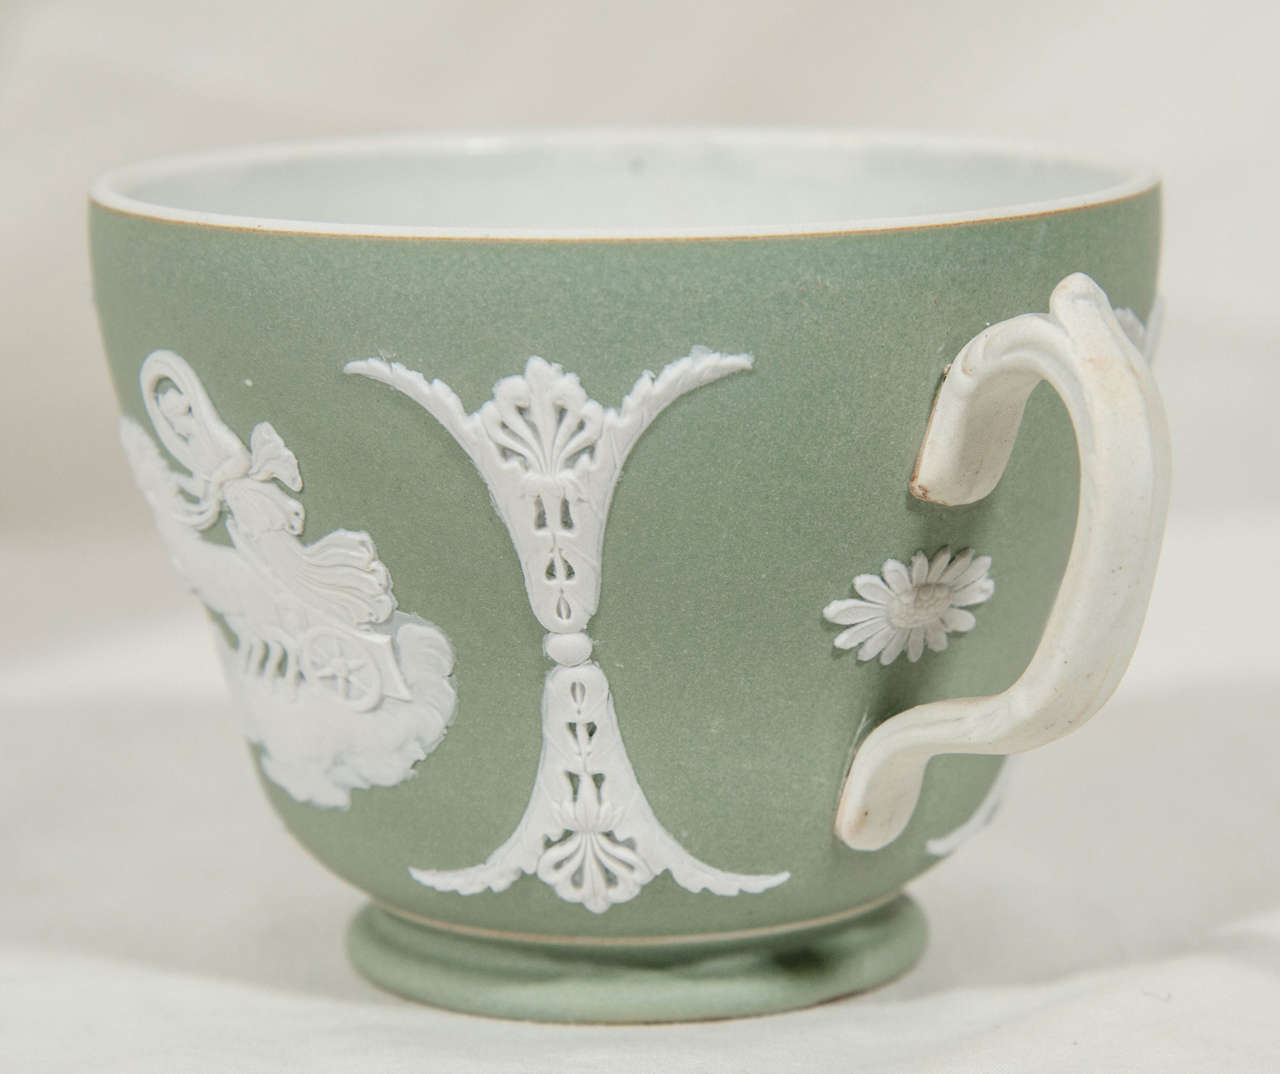 Antique Wedgwood Jasperware Tea Cup And Saucer At 1stdibs